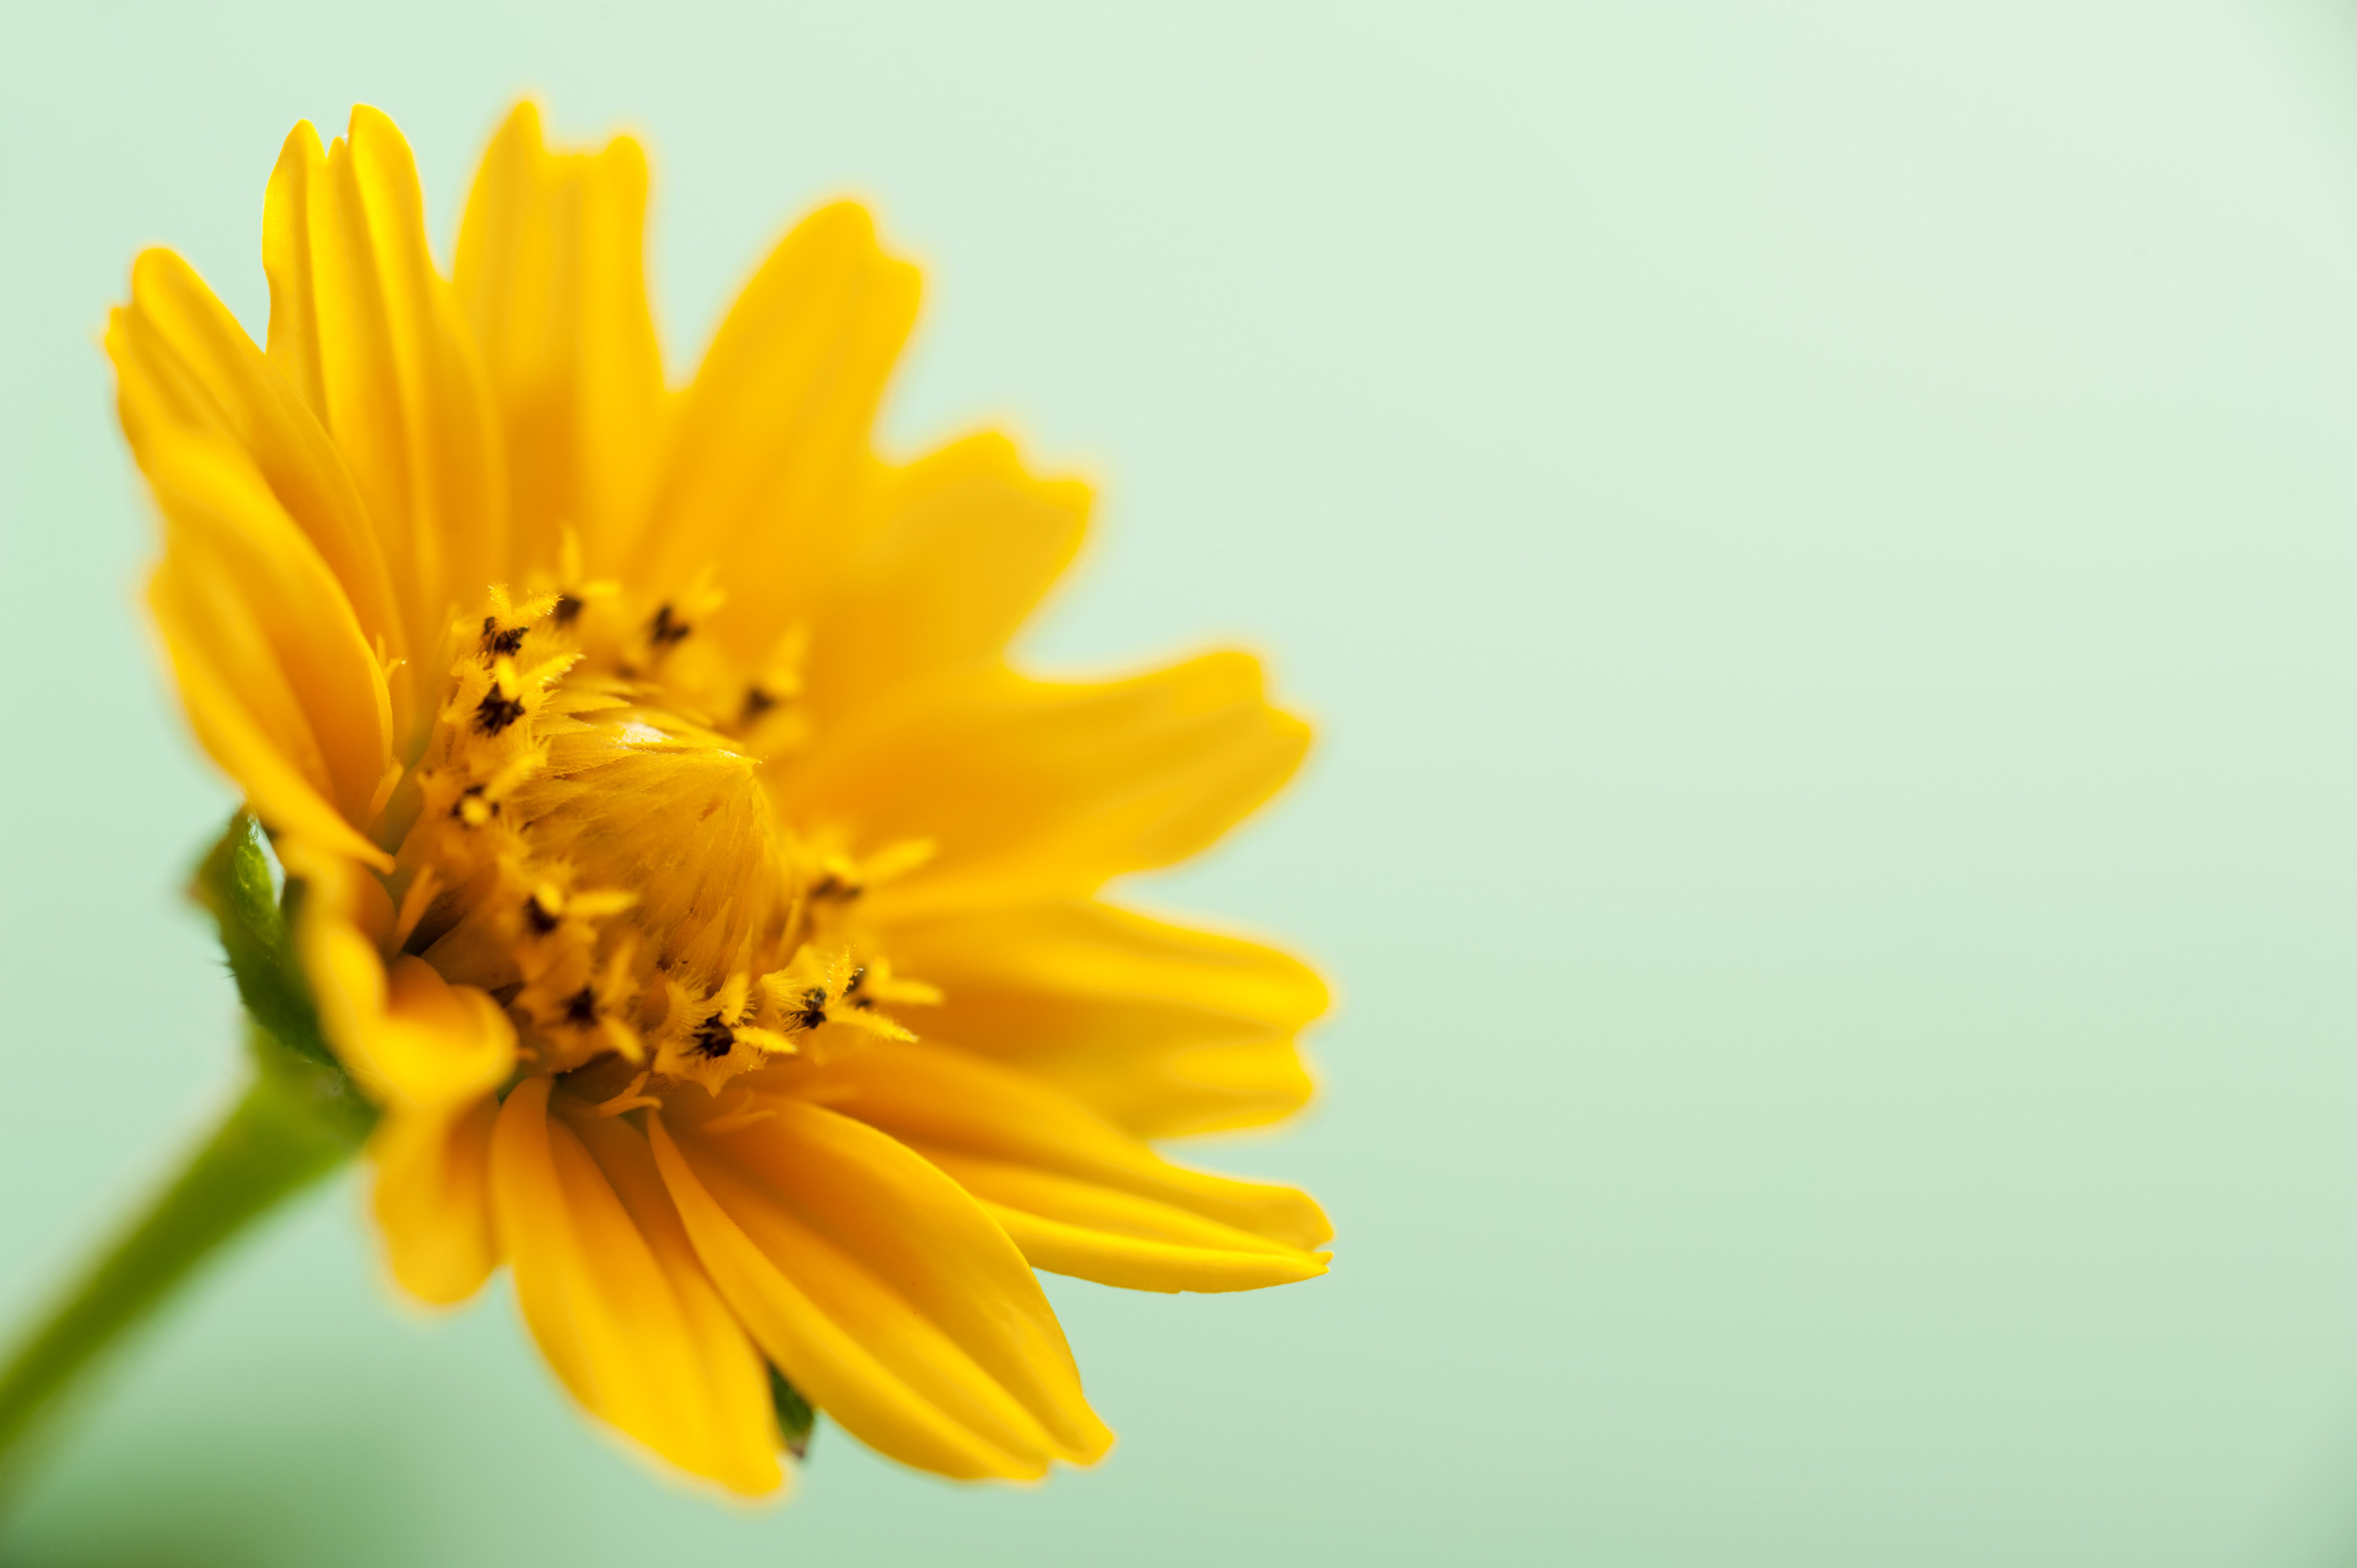 easter_daisy_background.jpg - Colorful yellow Easter or spring daisy symbolic of the season viewed at a three quarter angle over a soft fresh green background with copy space